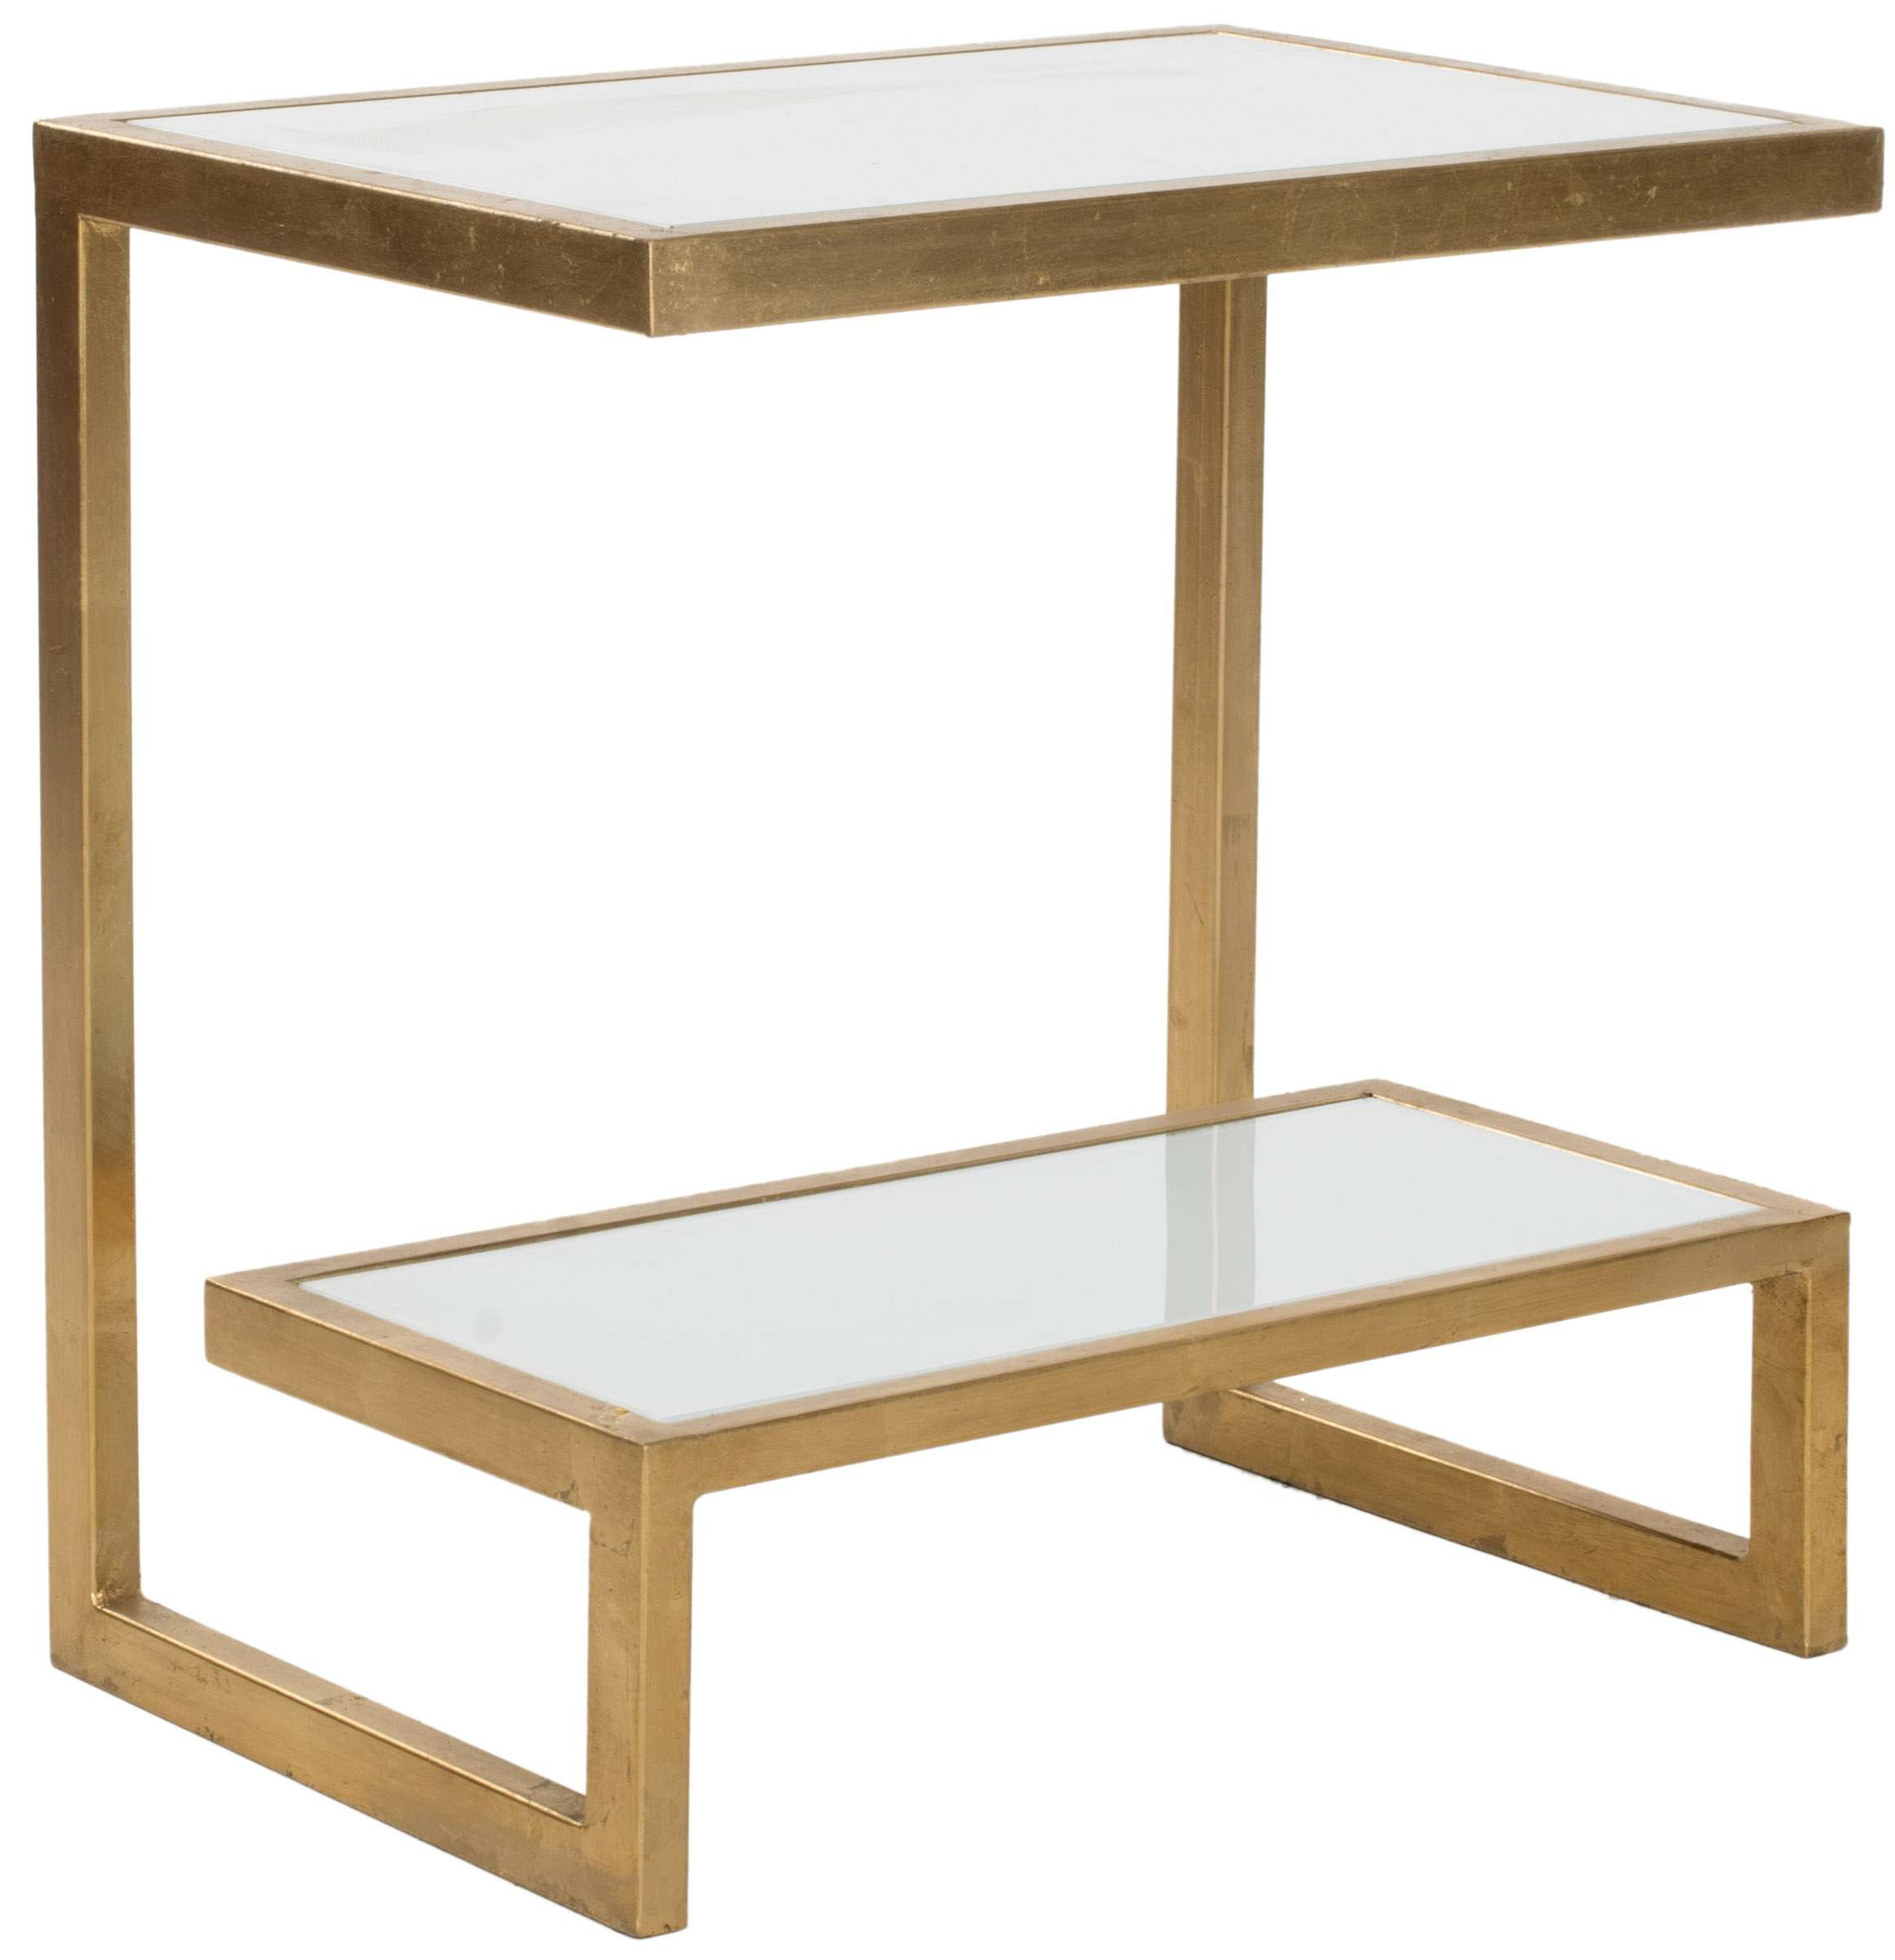 safavieh kennedy mirror top gold white accent table reviews mirrored glass with drawer art deco furniture coffee and end tables lawn garden lucite console wall clock side decor